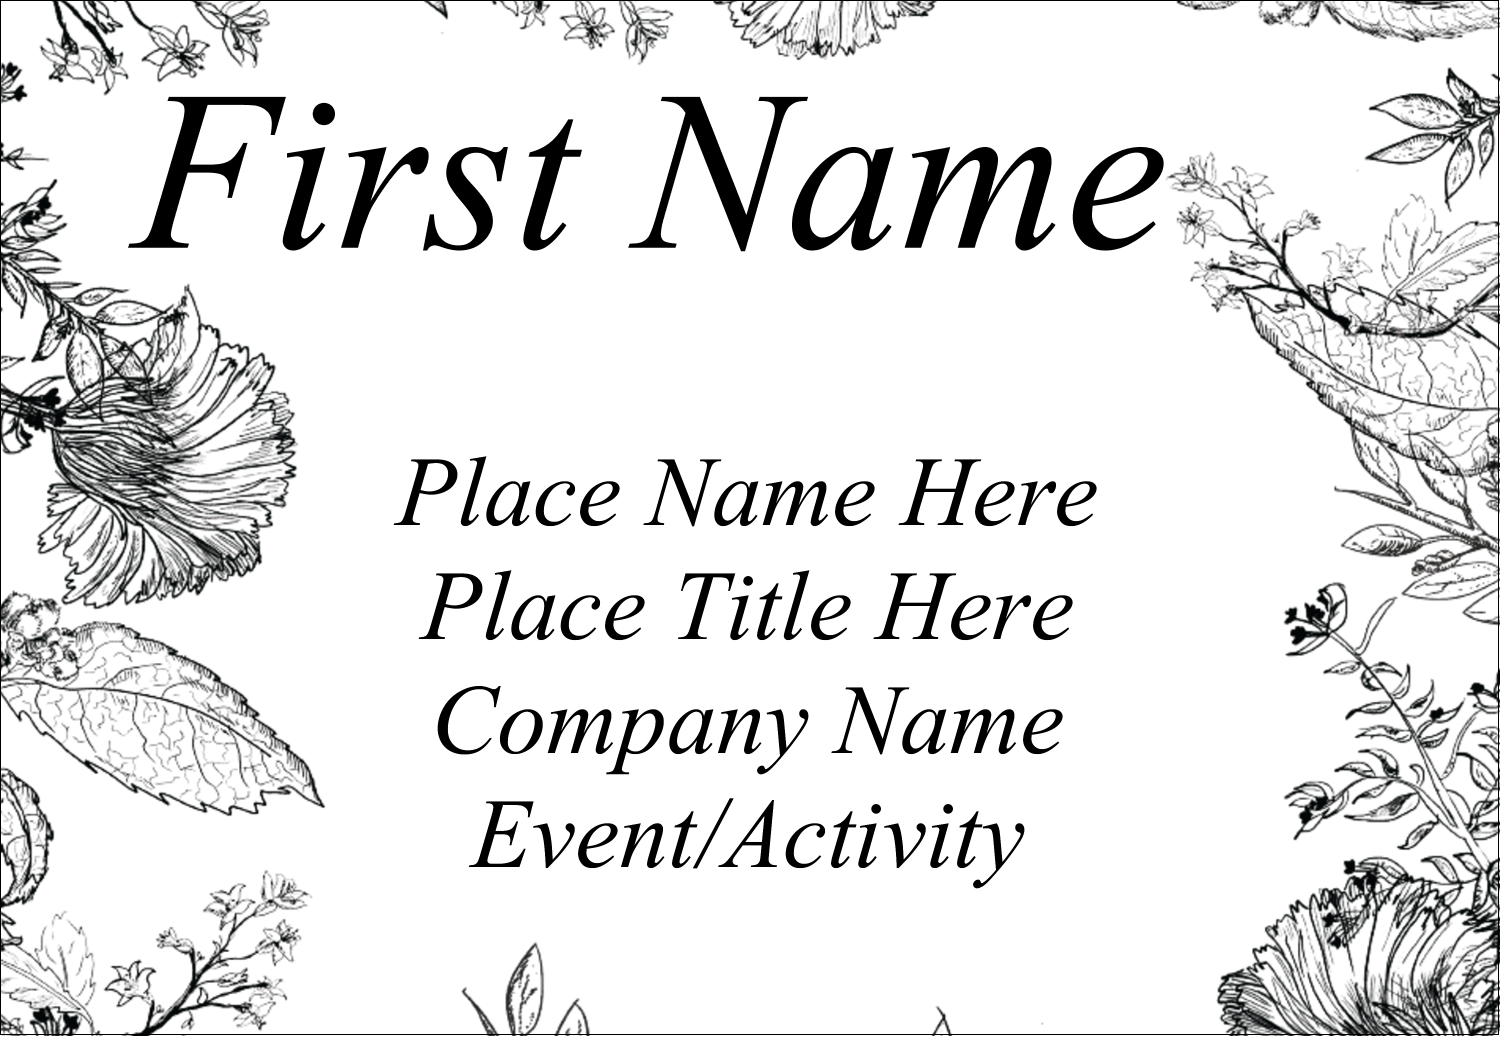 Let your project fully bloom with printable pre-designed Natural Beauty templates.